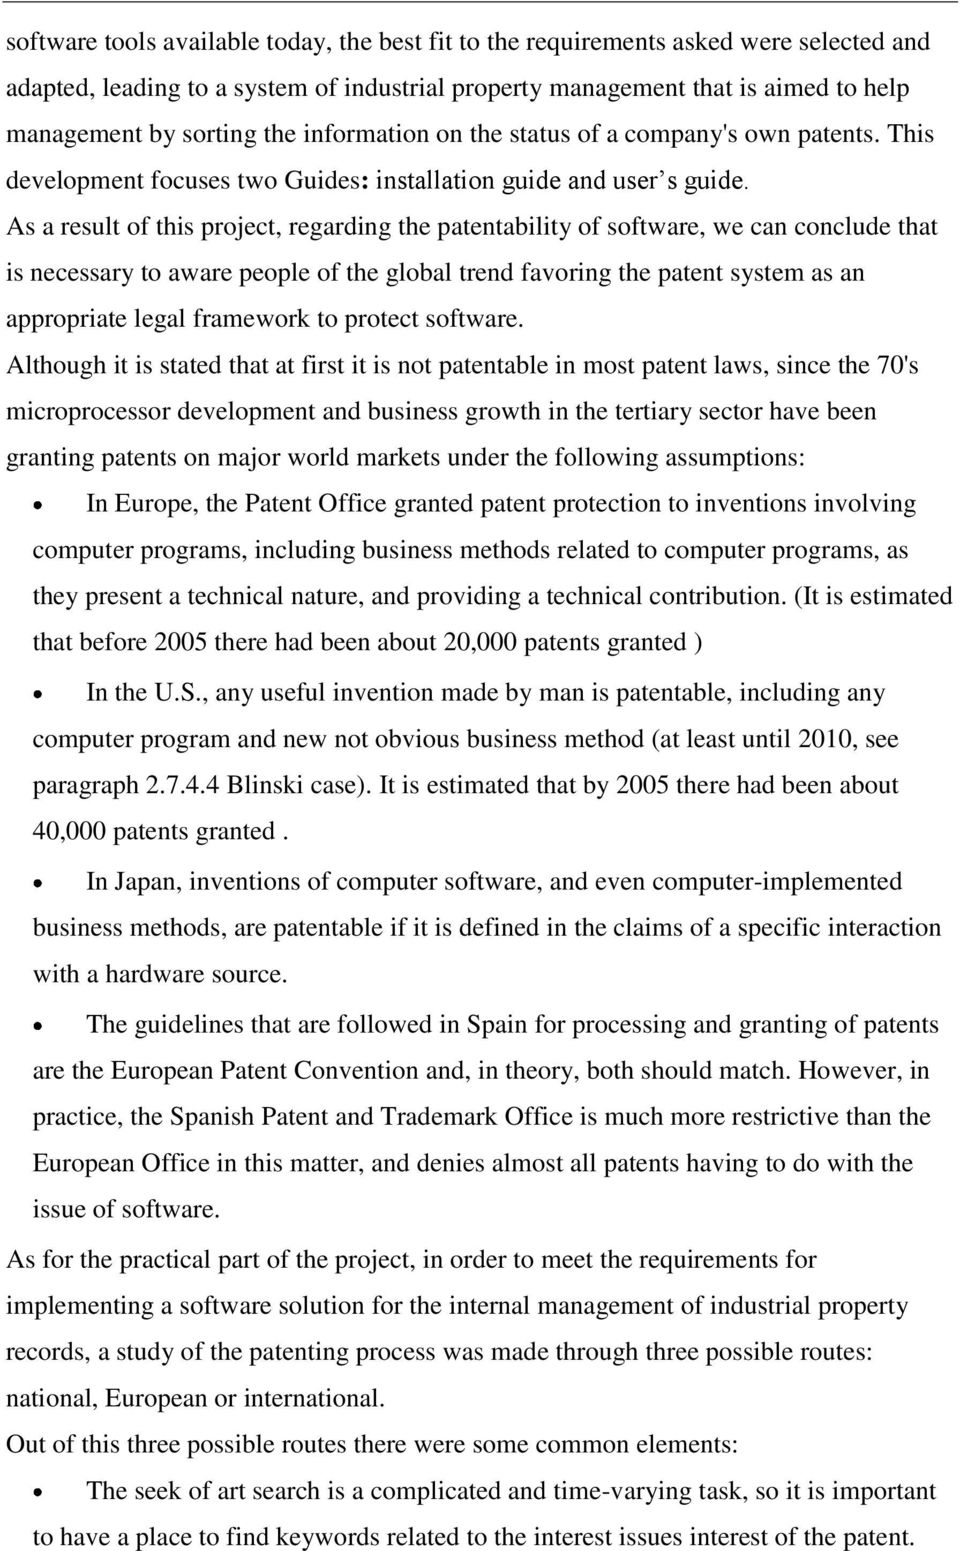 As a result of this project, regarding the patentability of software, we can conclude that is necessary to aware people of the global trend favoring the patent system as an appropriate legal